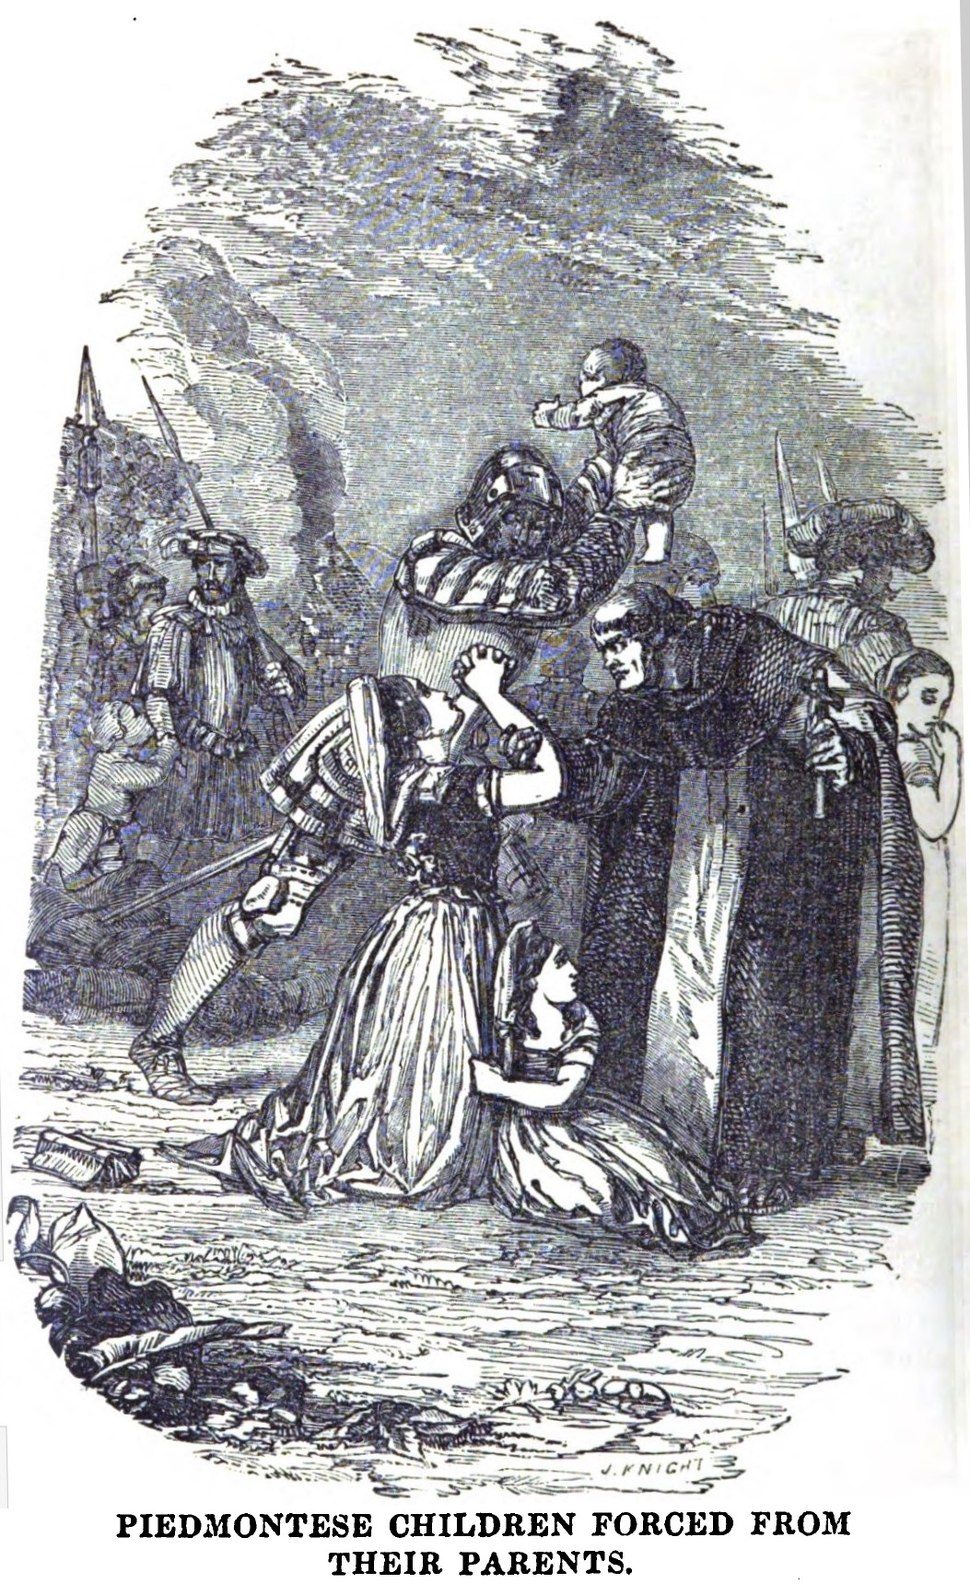 Piedmontese Children Forced from their parents (October 1853, X, p.108)